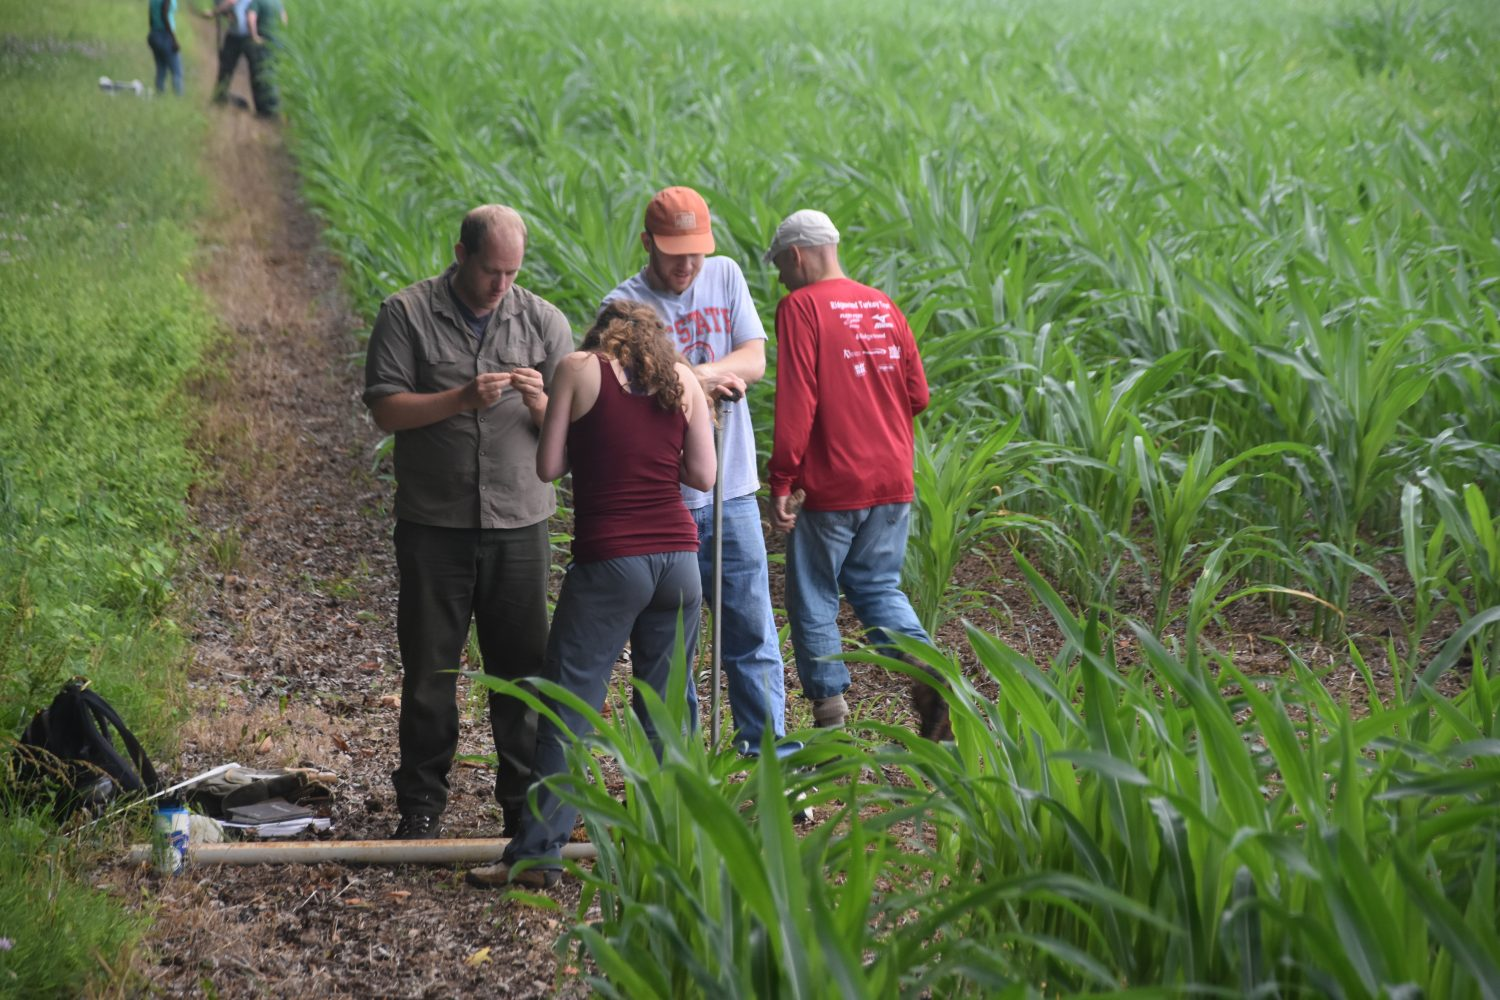 REU students work shoulder to shoulder with NC State faculty on research projects